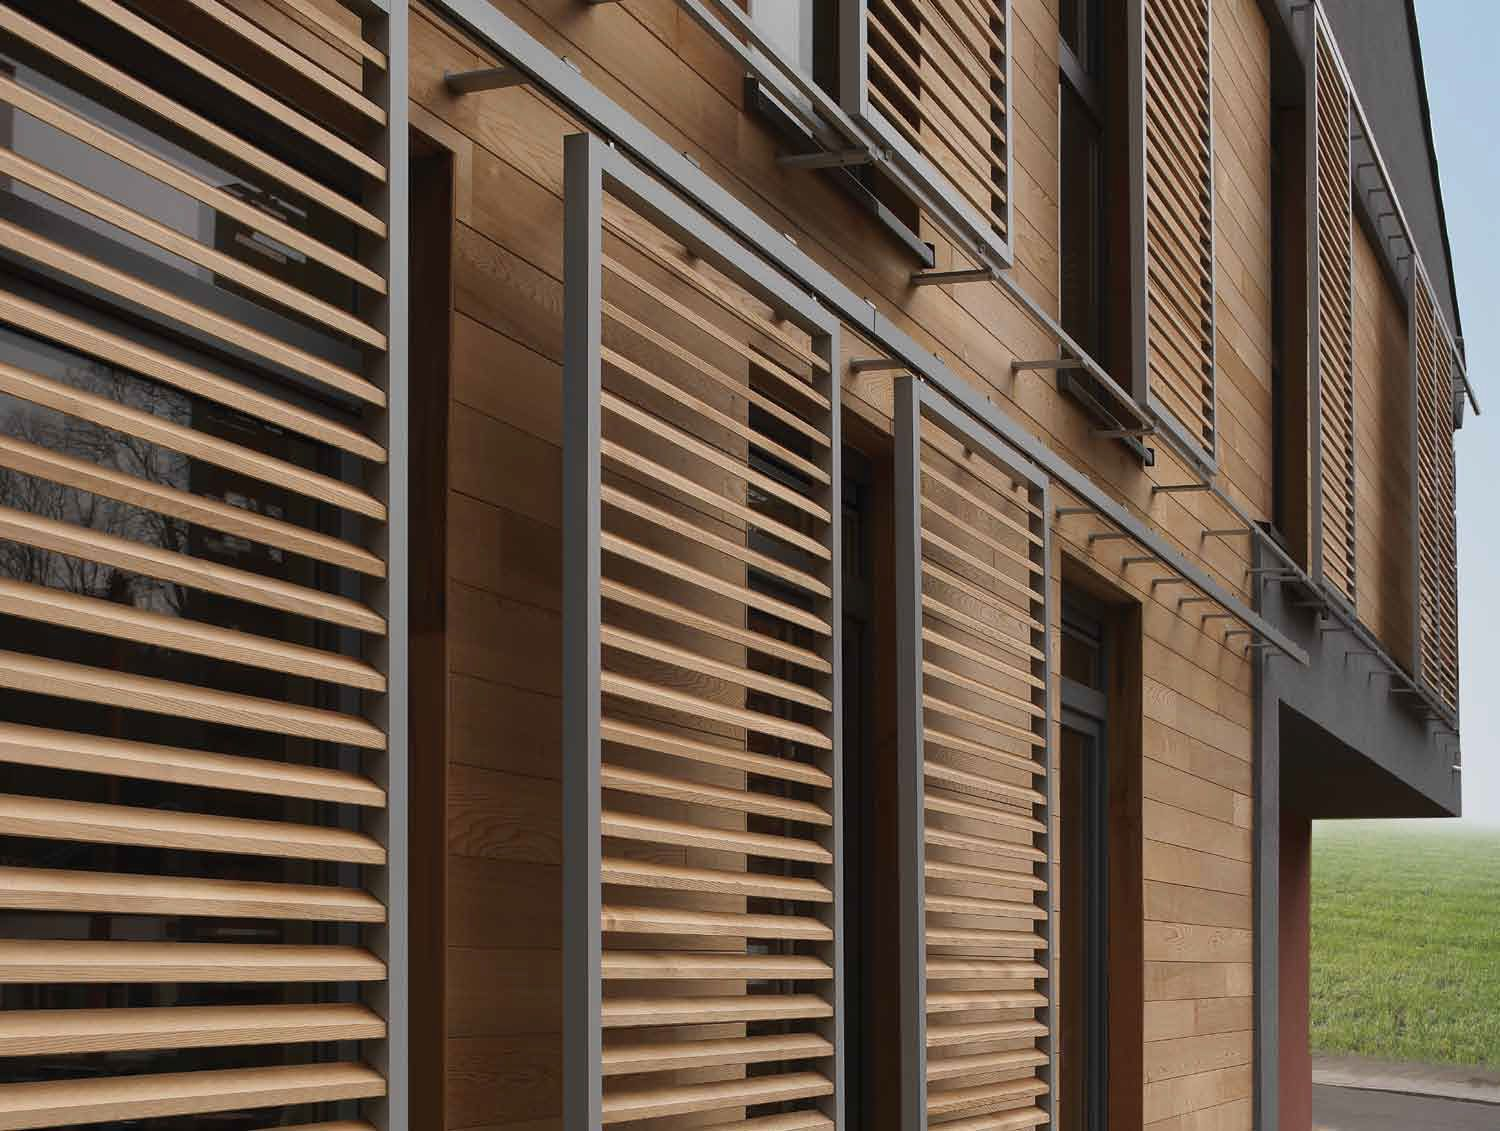 brise soleil de fa ade en bois orientable ducoslide luxframe duco building details and. Black Bedroom Furniture Sets. Home Design Ideas